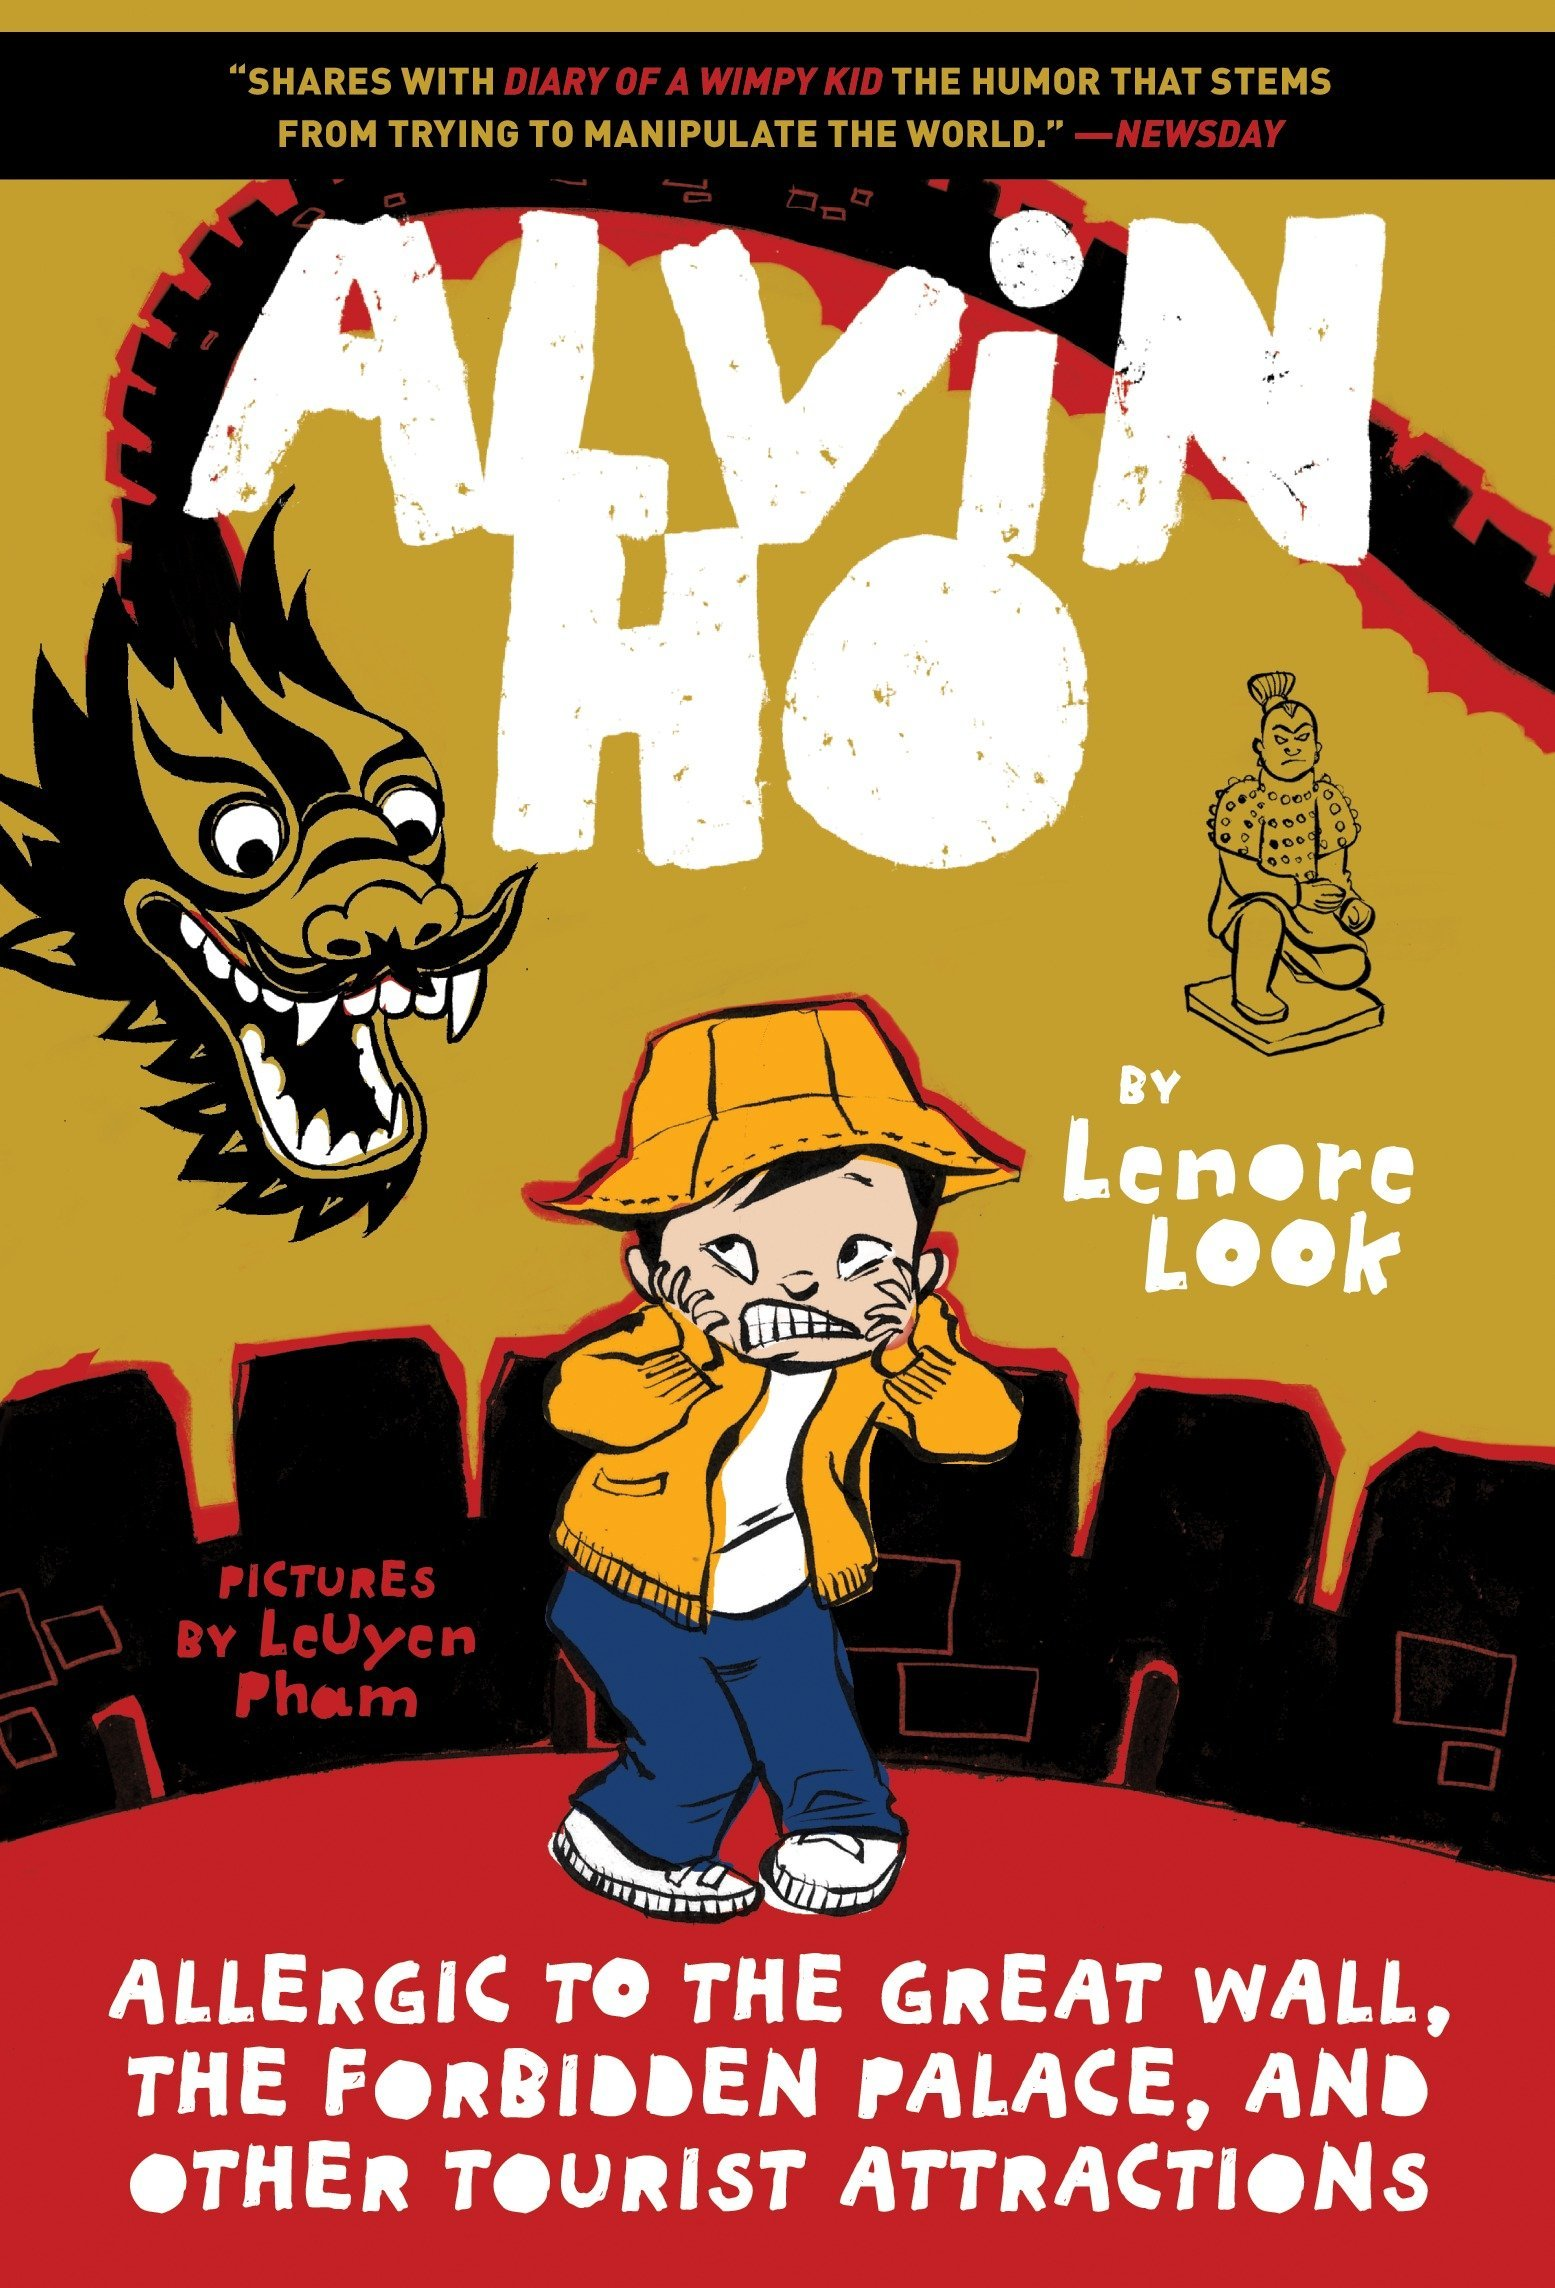 Amazon.com: Alvin Ho: Allergic to the Great Wall, the Forbidden Palace, and  Other Tourist Attractions (9780553520552): Lenore Look, LeUyen Pham: Books